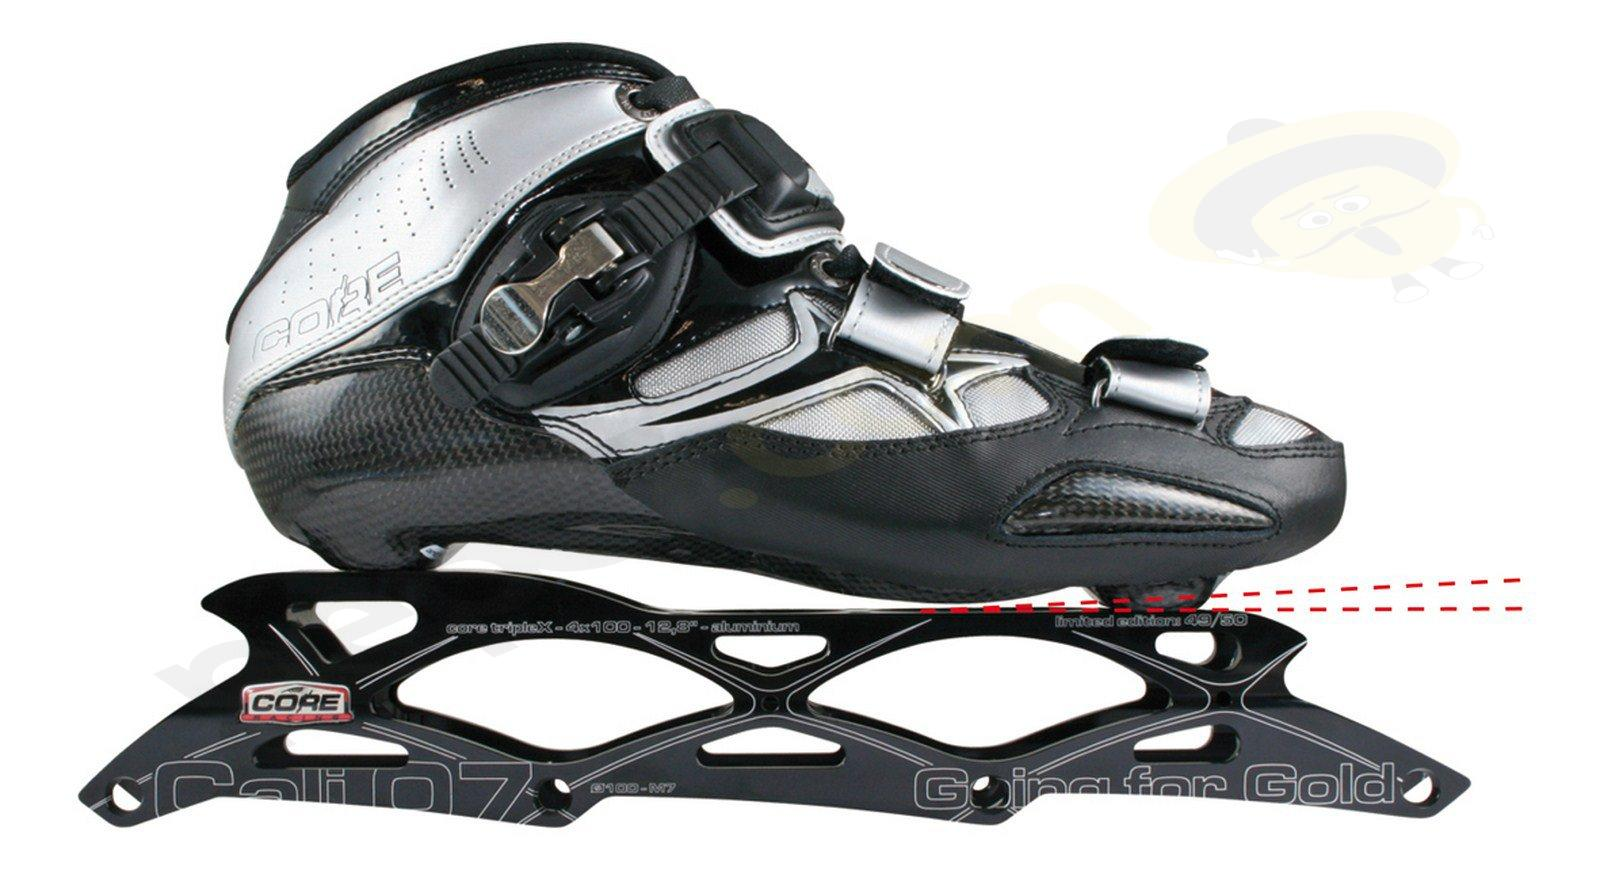 How To Choose Inline Skates Kolekov Brusle Praha 11 Aggressive Pitch Control Enables Change Of Front Back Angle The Heel Is Either Adjusted Higher Than Tip Or Other Way Round First Option Provides Better